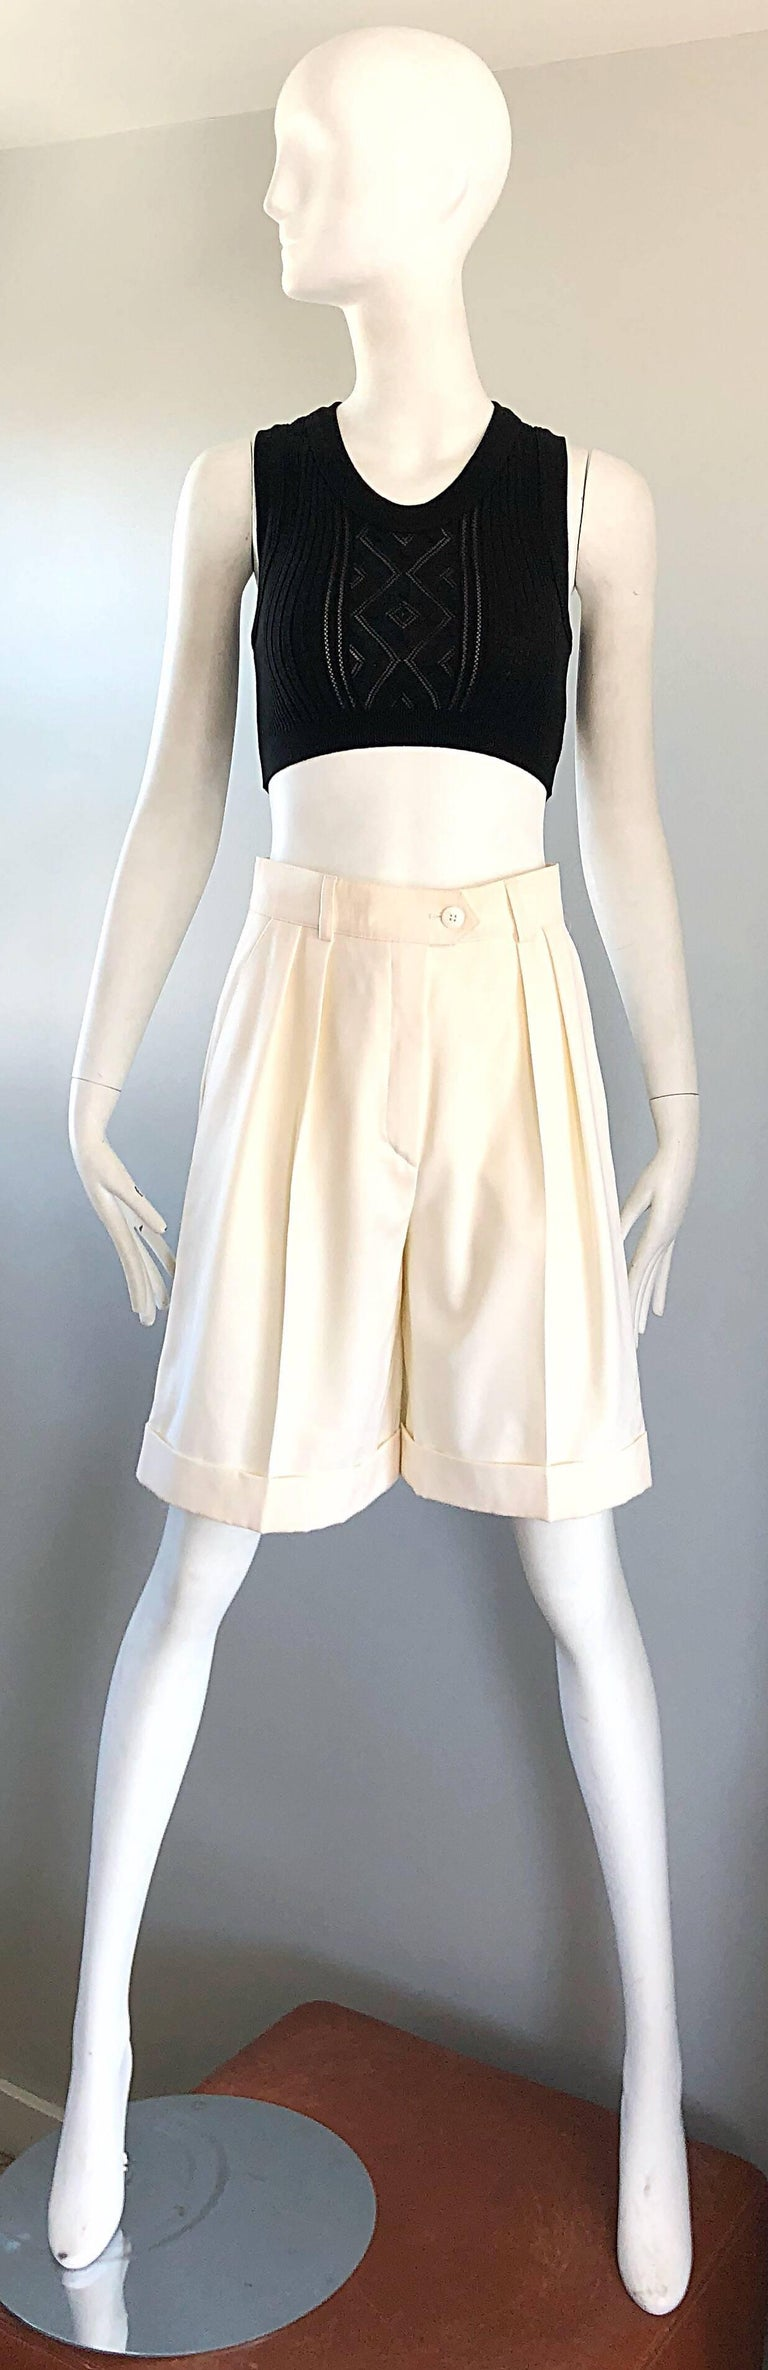 Chic late 1980s ESCADA by MARGARETHA LEY new with original store tags ivory / off-white wide leg culottes shorts! Flattering pleated front with pockets at each side of the waist. Button closure at front center with a zipper fly. Super soft